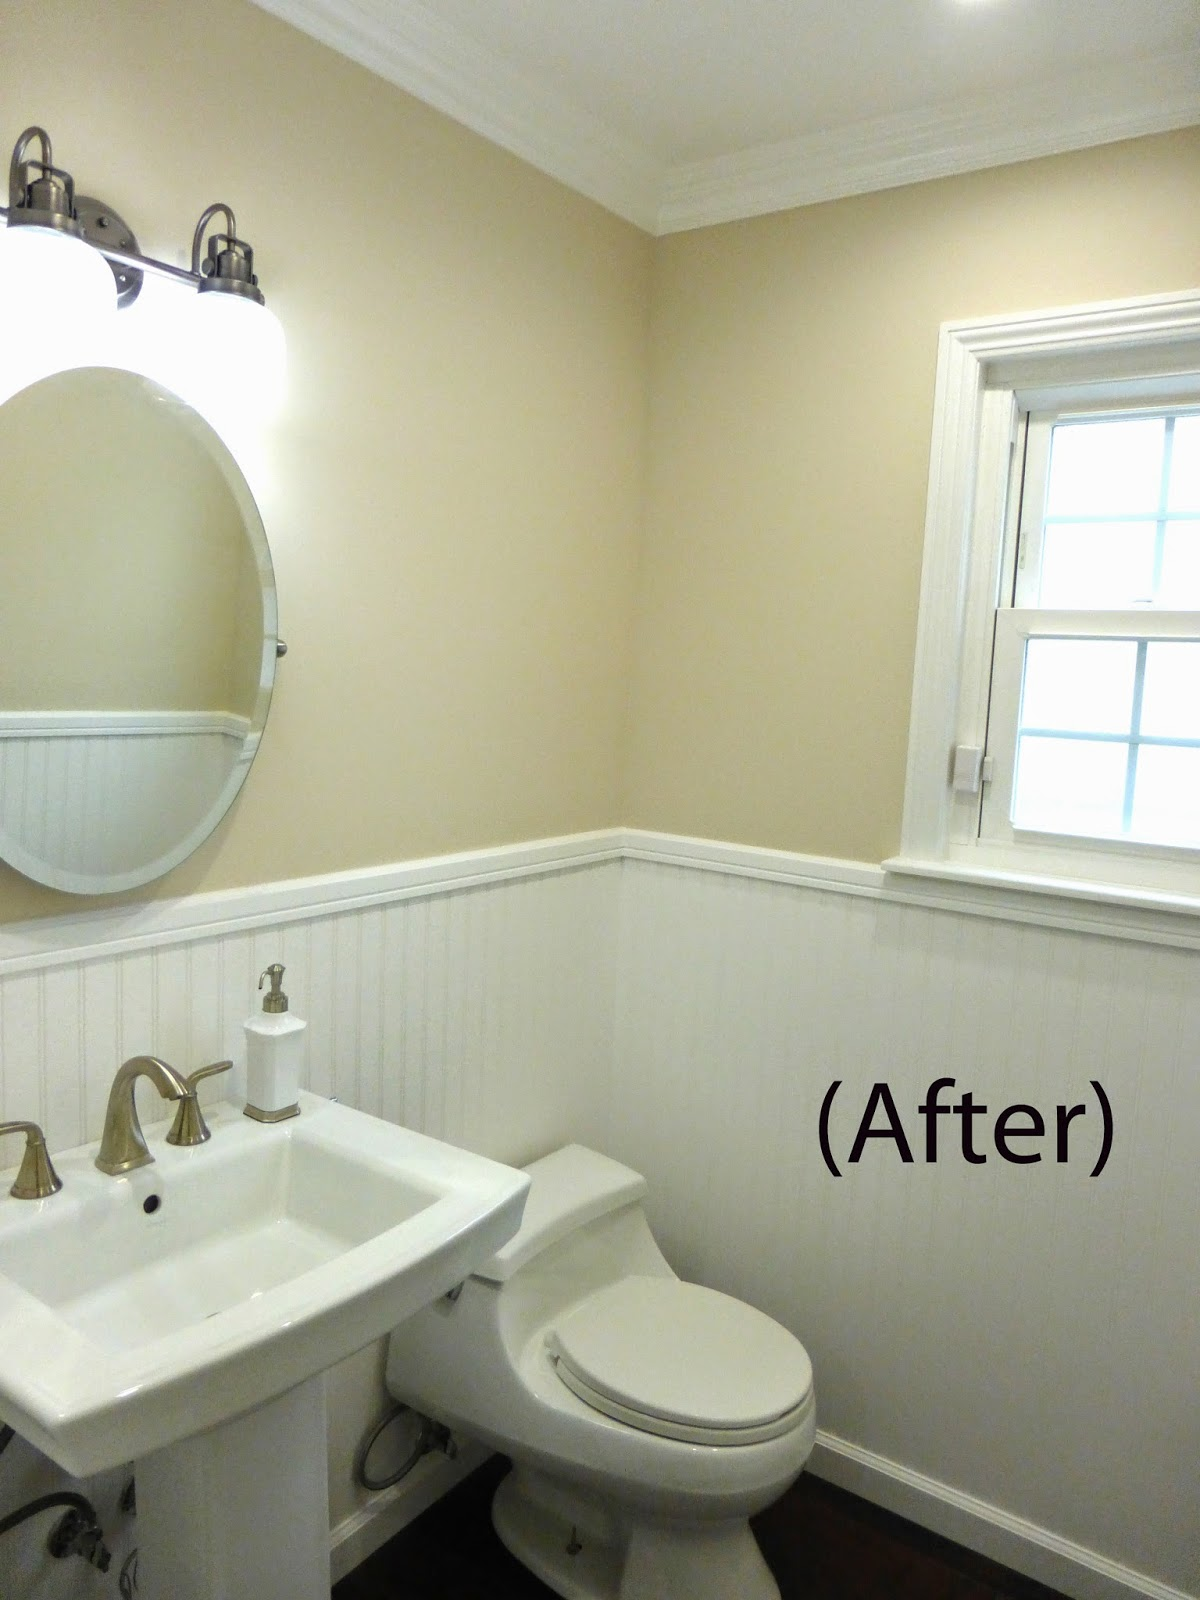 Updated entire look of the guest bathroom adding wainscoting, new sink